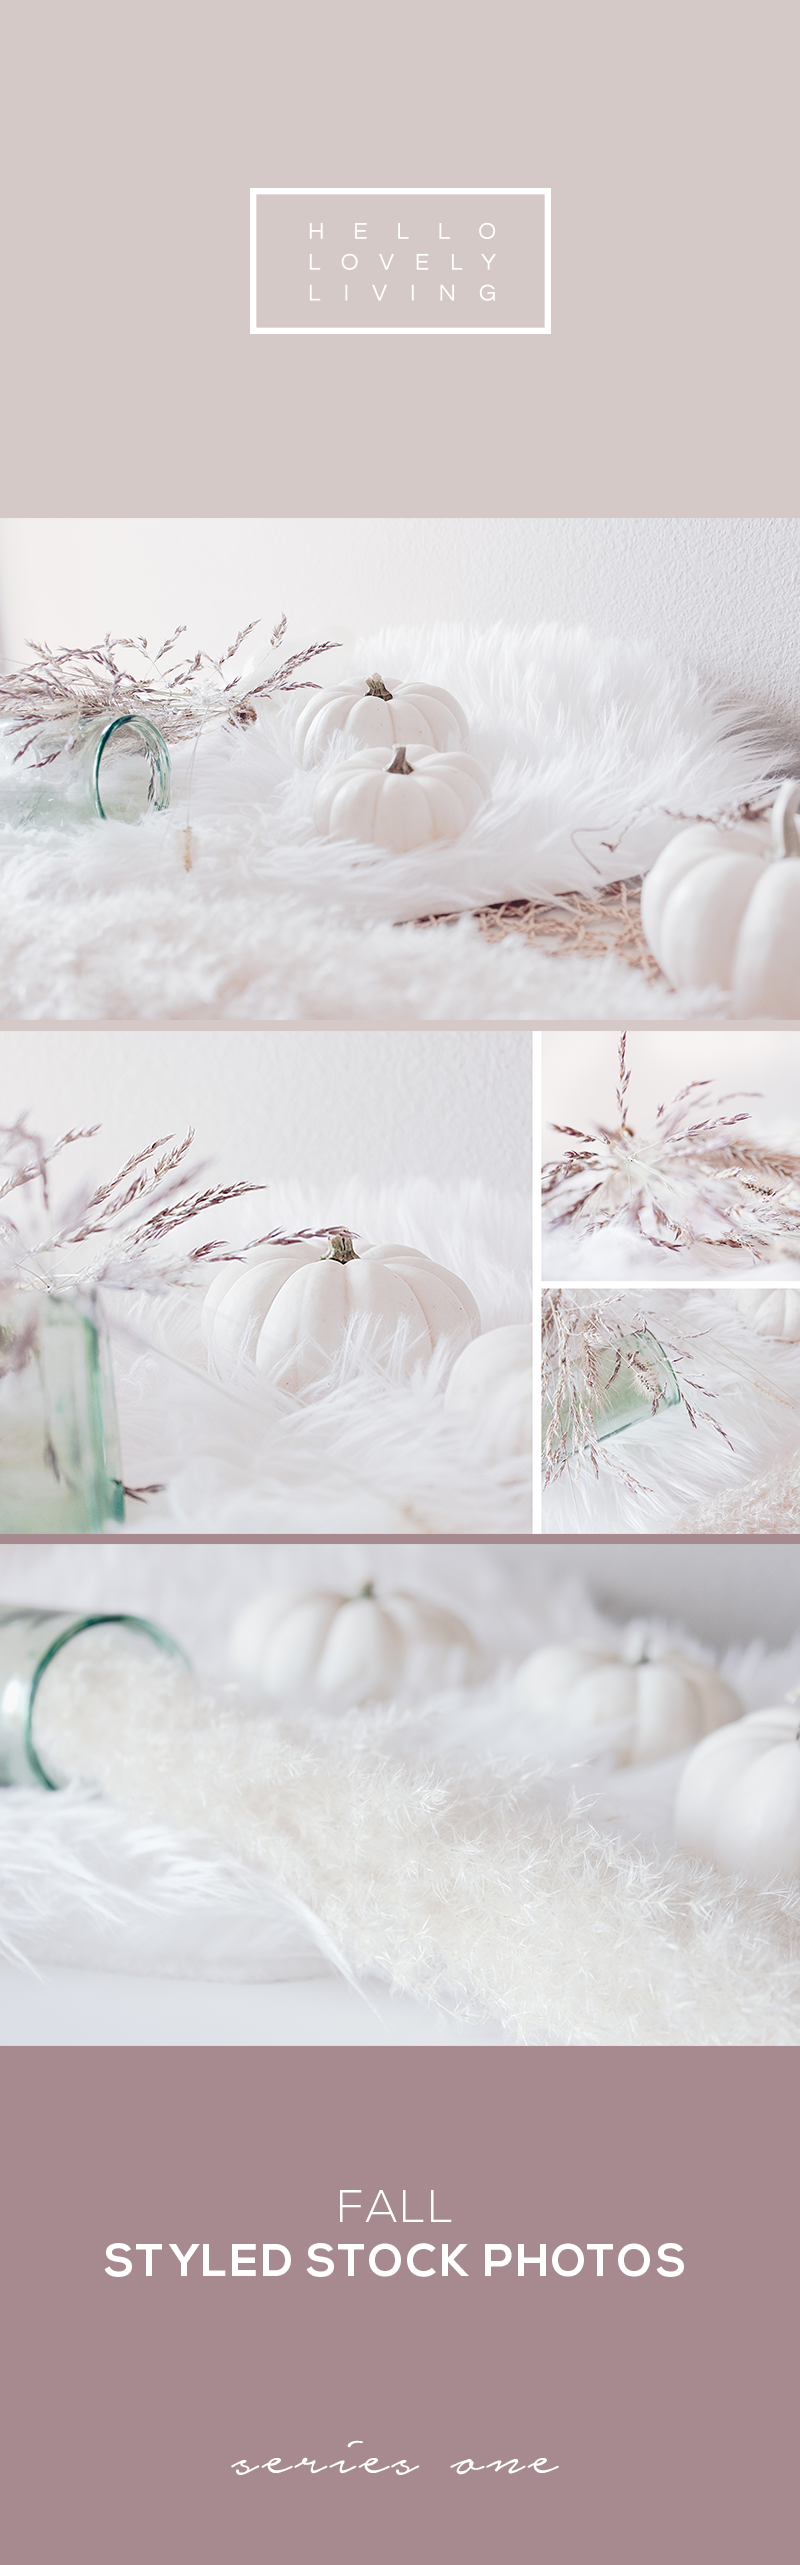 hello-lovely-living-styled-stock-fall-1.png